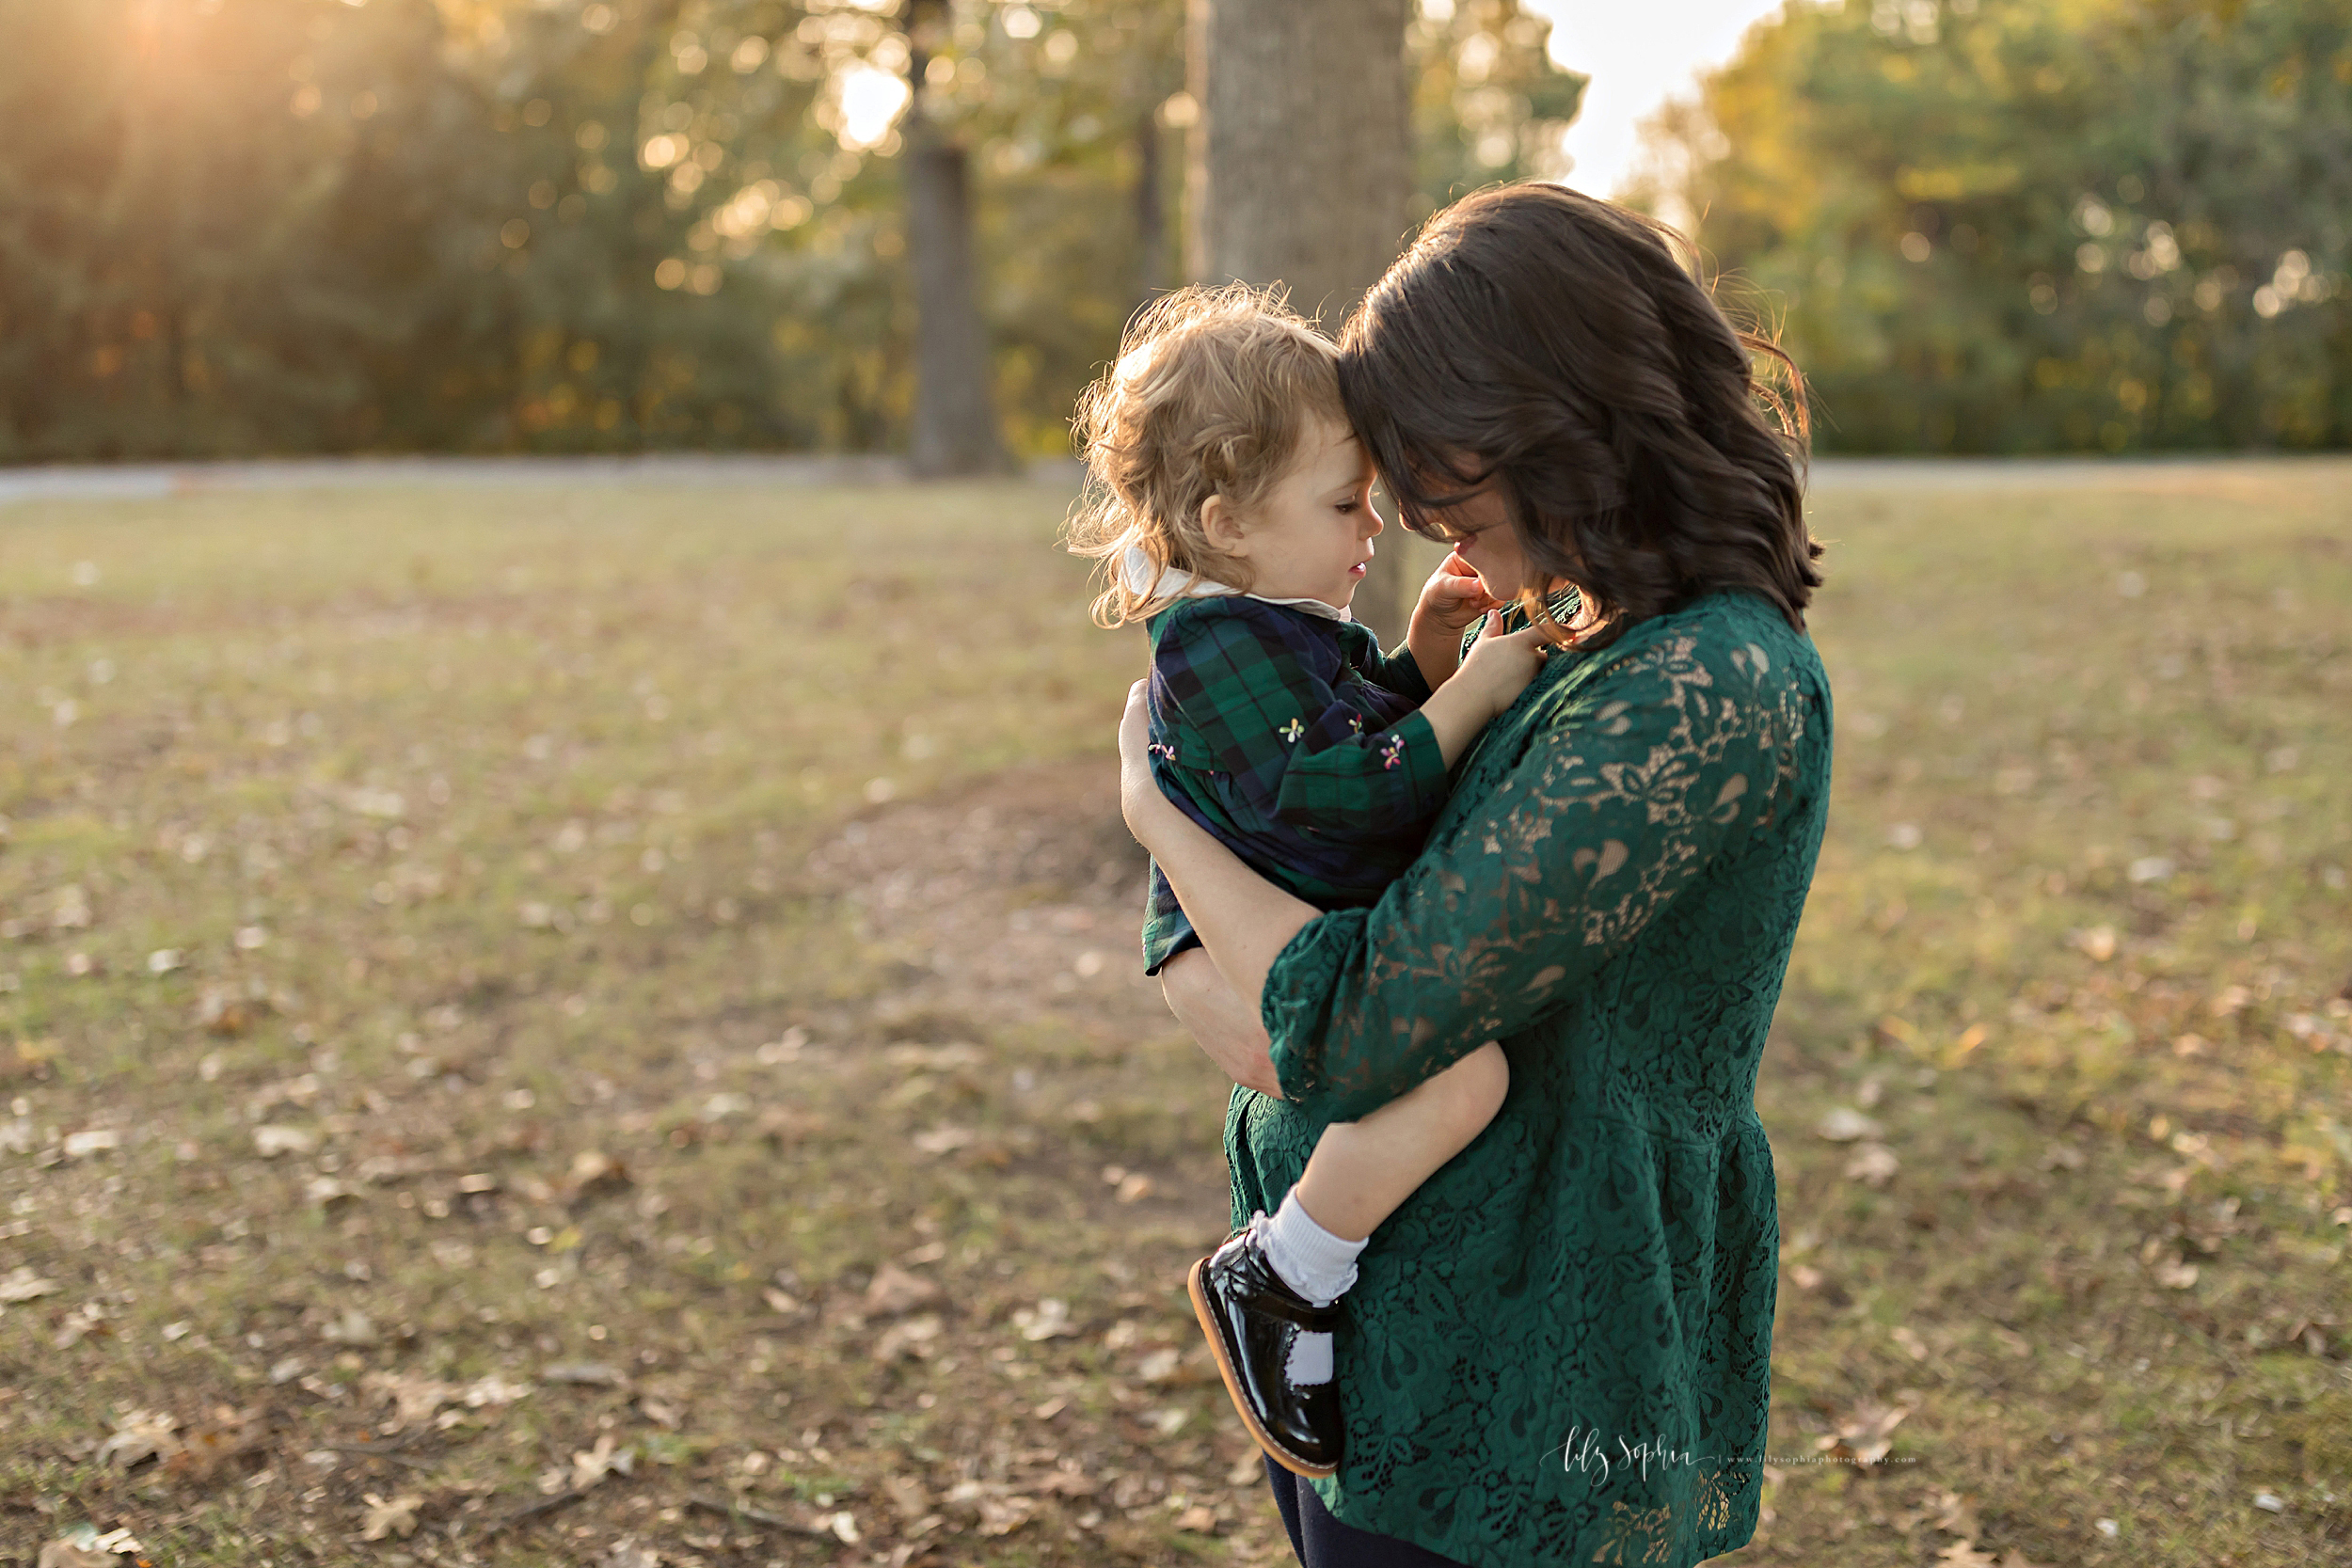 atlanta-buckhead-brookhaven-decatur-lily-sophia-photography-photographer-portraits-grant-park-intown-outdoor-family-sunset-session-toddler-baby-girl_0013.jpg